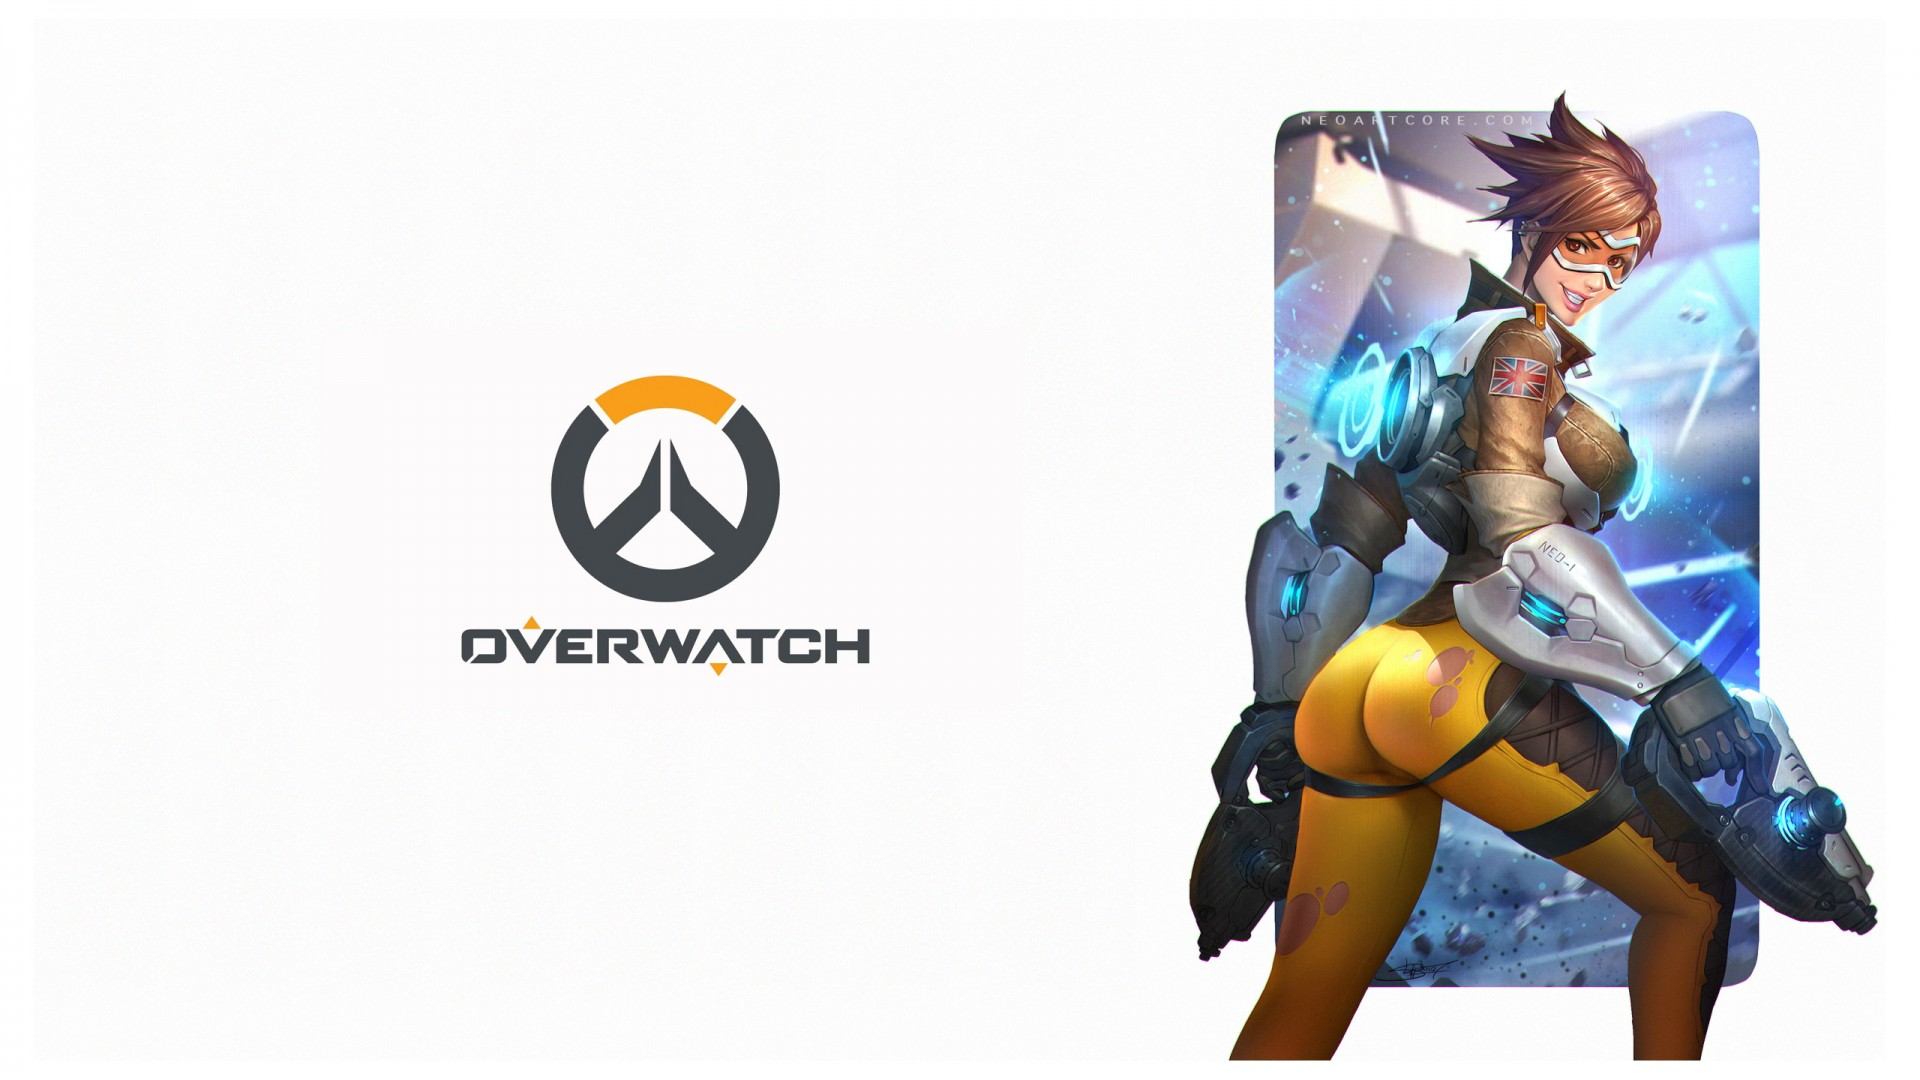 Cute Dogs Full Hd Wallpapers Overwatch Tracer Artwork Wallpapers Hd Wallpapers Id